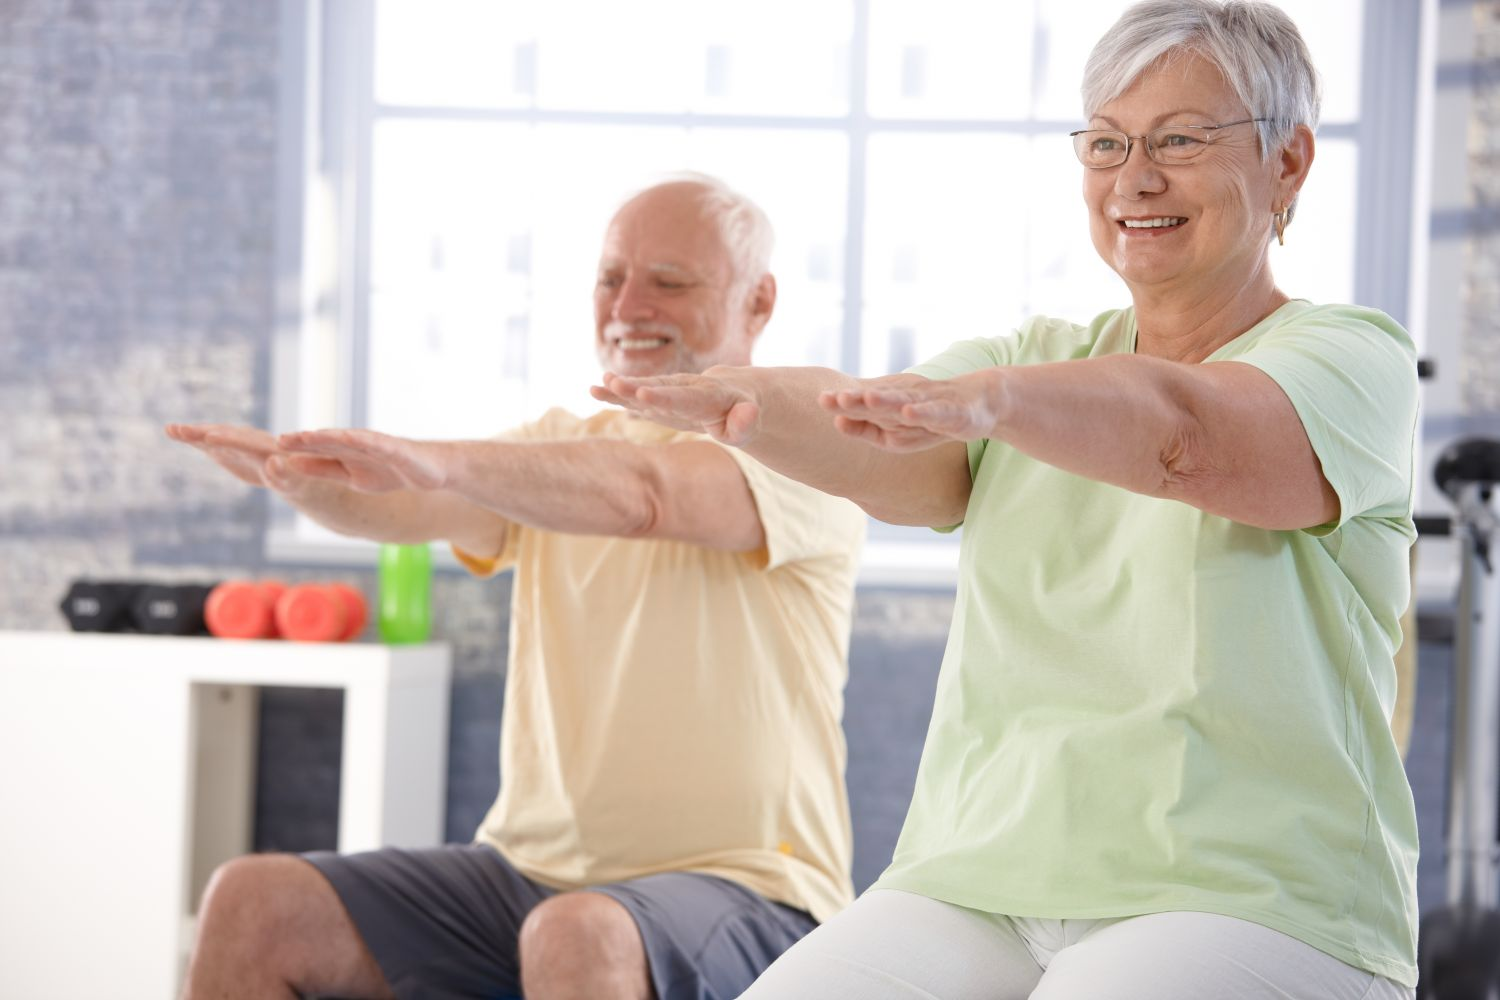 teaching  exercises to help with mobility and strength to support your condition